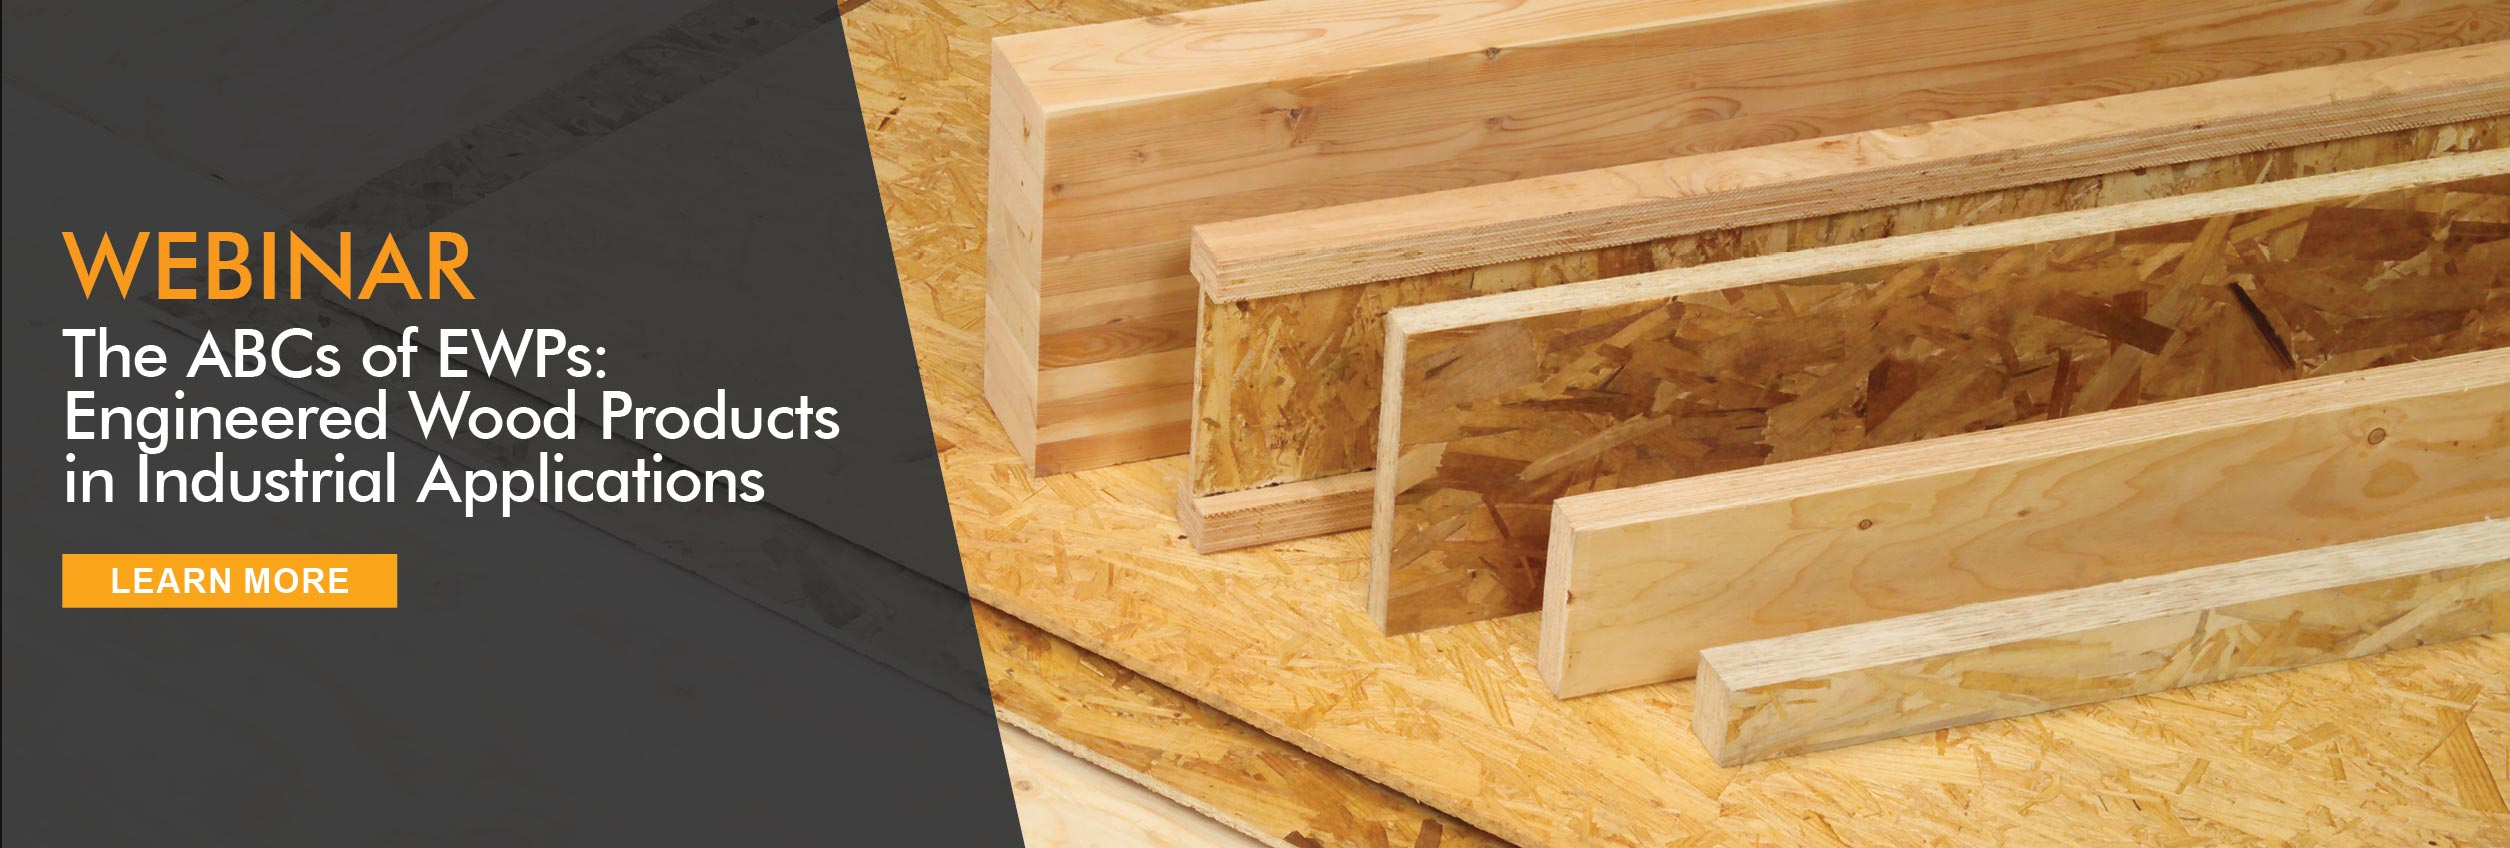 Webinar: The ABCs of Engineered Wood Products in Industrial Applications